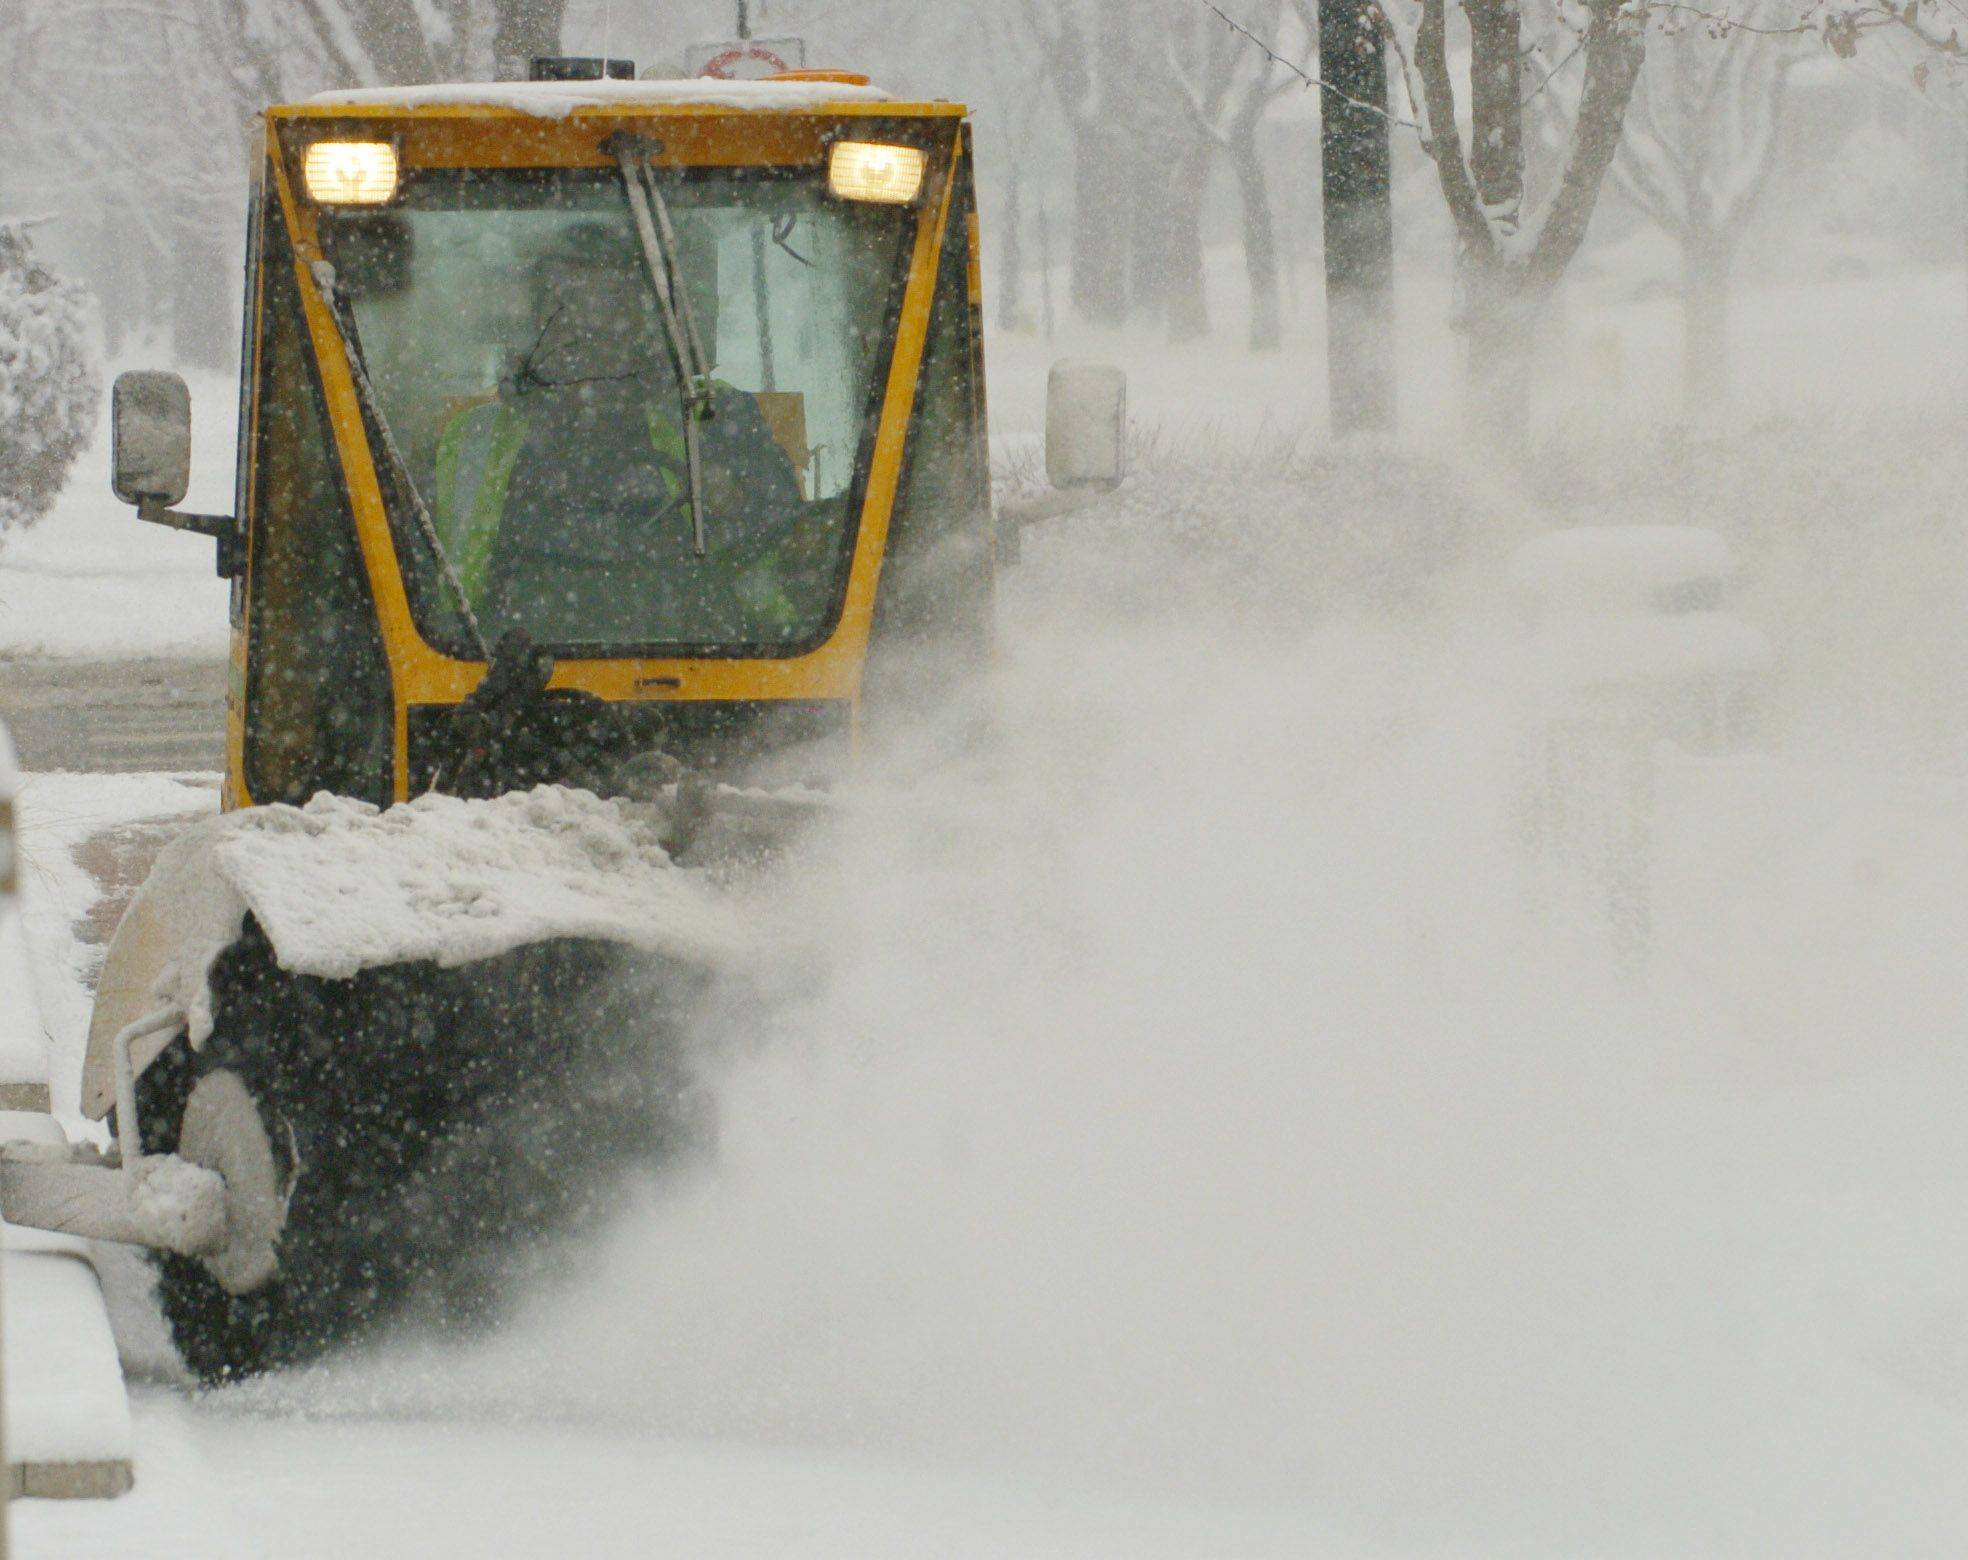 The public works clears the sidewalk in front of the Mt. Prospect Public Library Saturday morning.